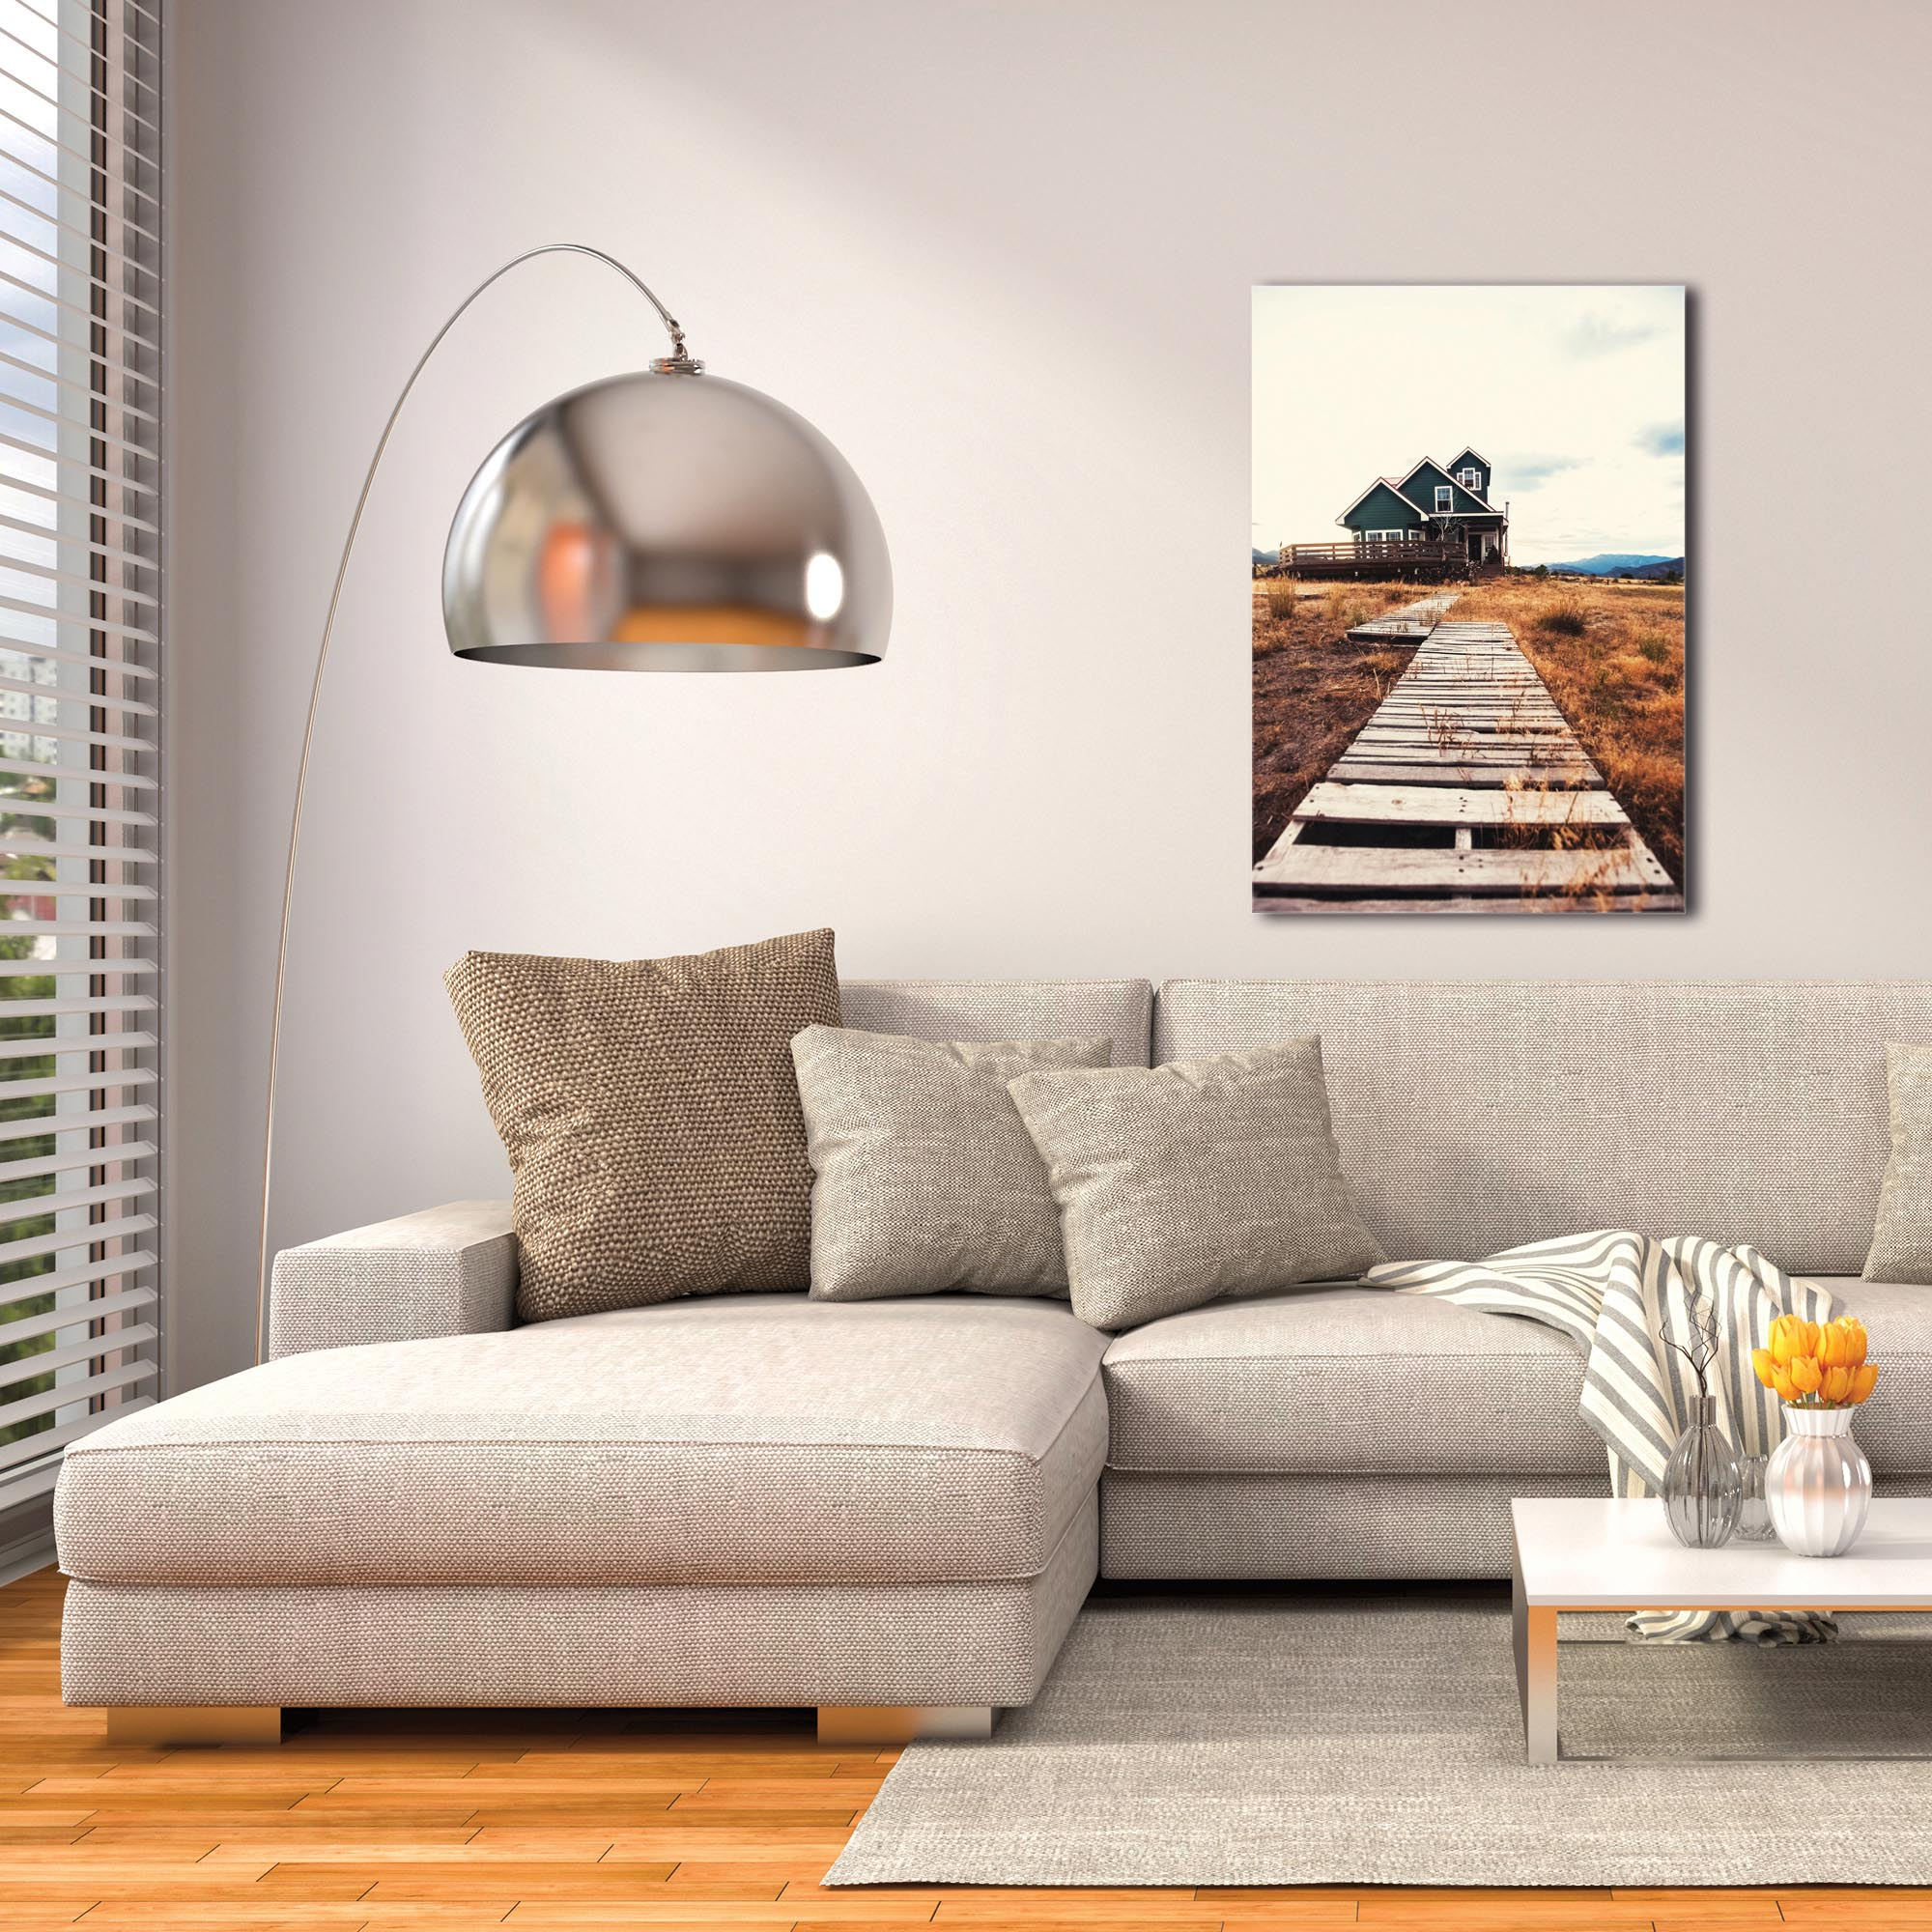 Western Wall Art 'The Walkway' - Farm Landscape Decor on Metal or Plexiglass - Image 3